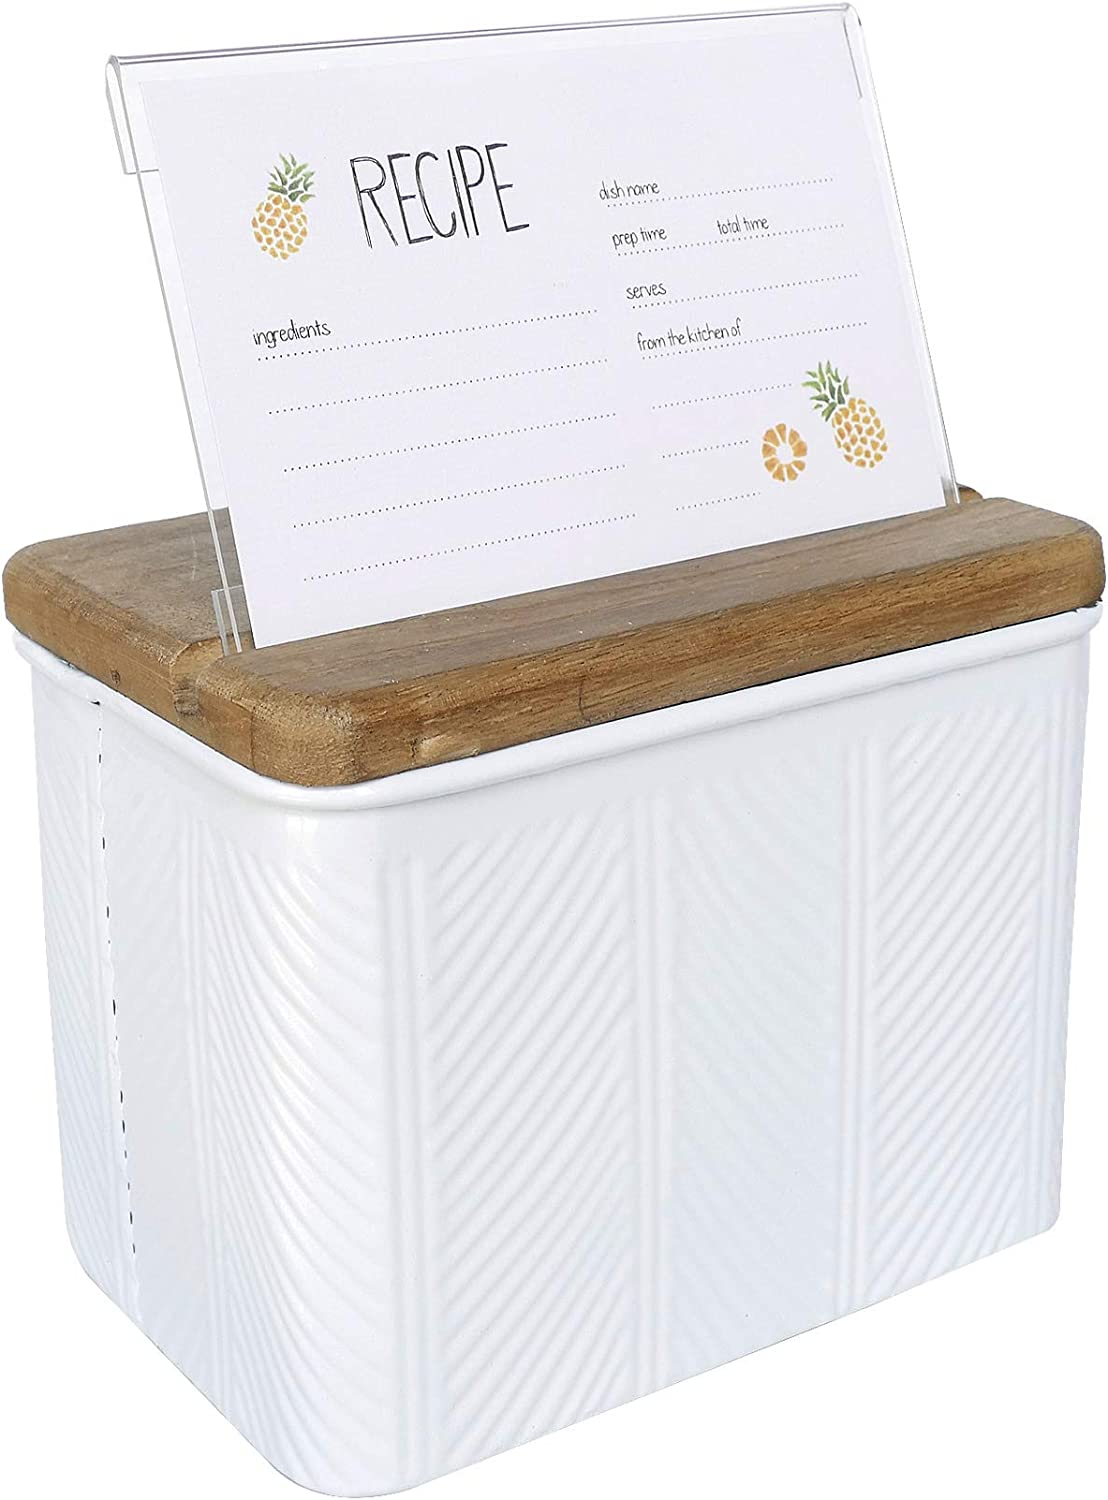 NIKKY HOME Kitchen Metal Recipe Organization Box with Cards and Dividers, 7.09 x 4.72 x 5.71 Inches